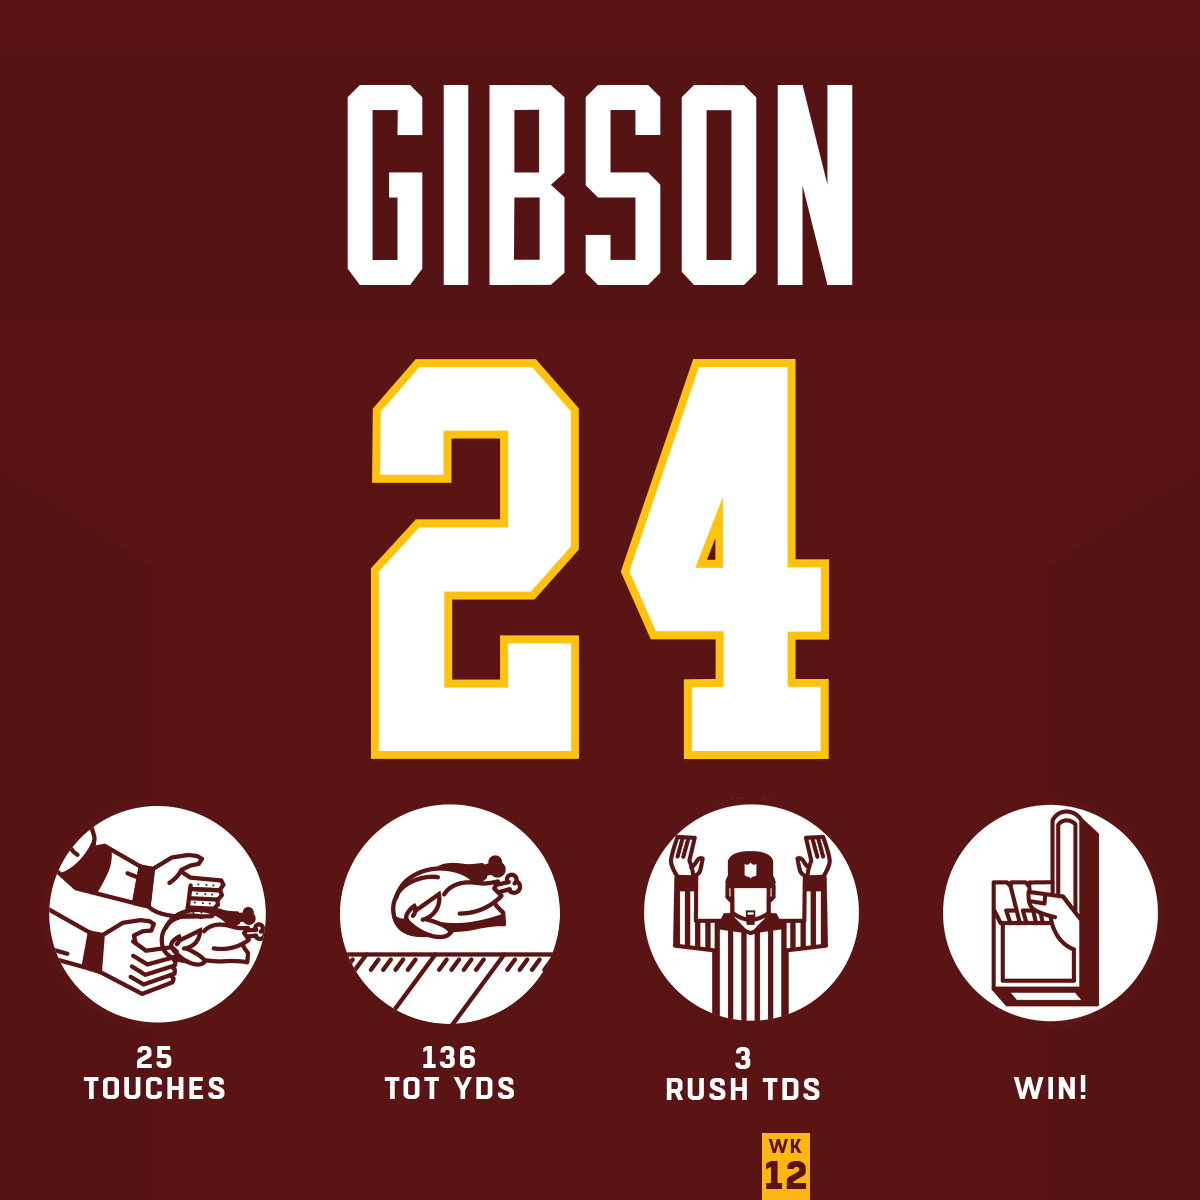 First rookie to score 3 TDs on Thanksgiving since @RandyMoss. #HaveADay   @AntonioGibson14 | #WashingtonFootball